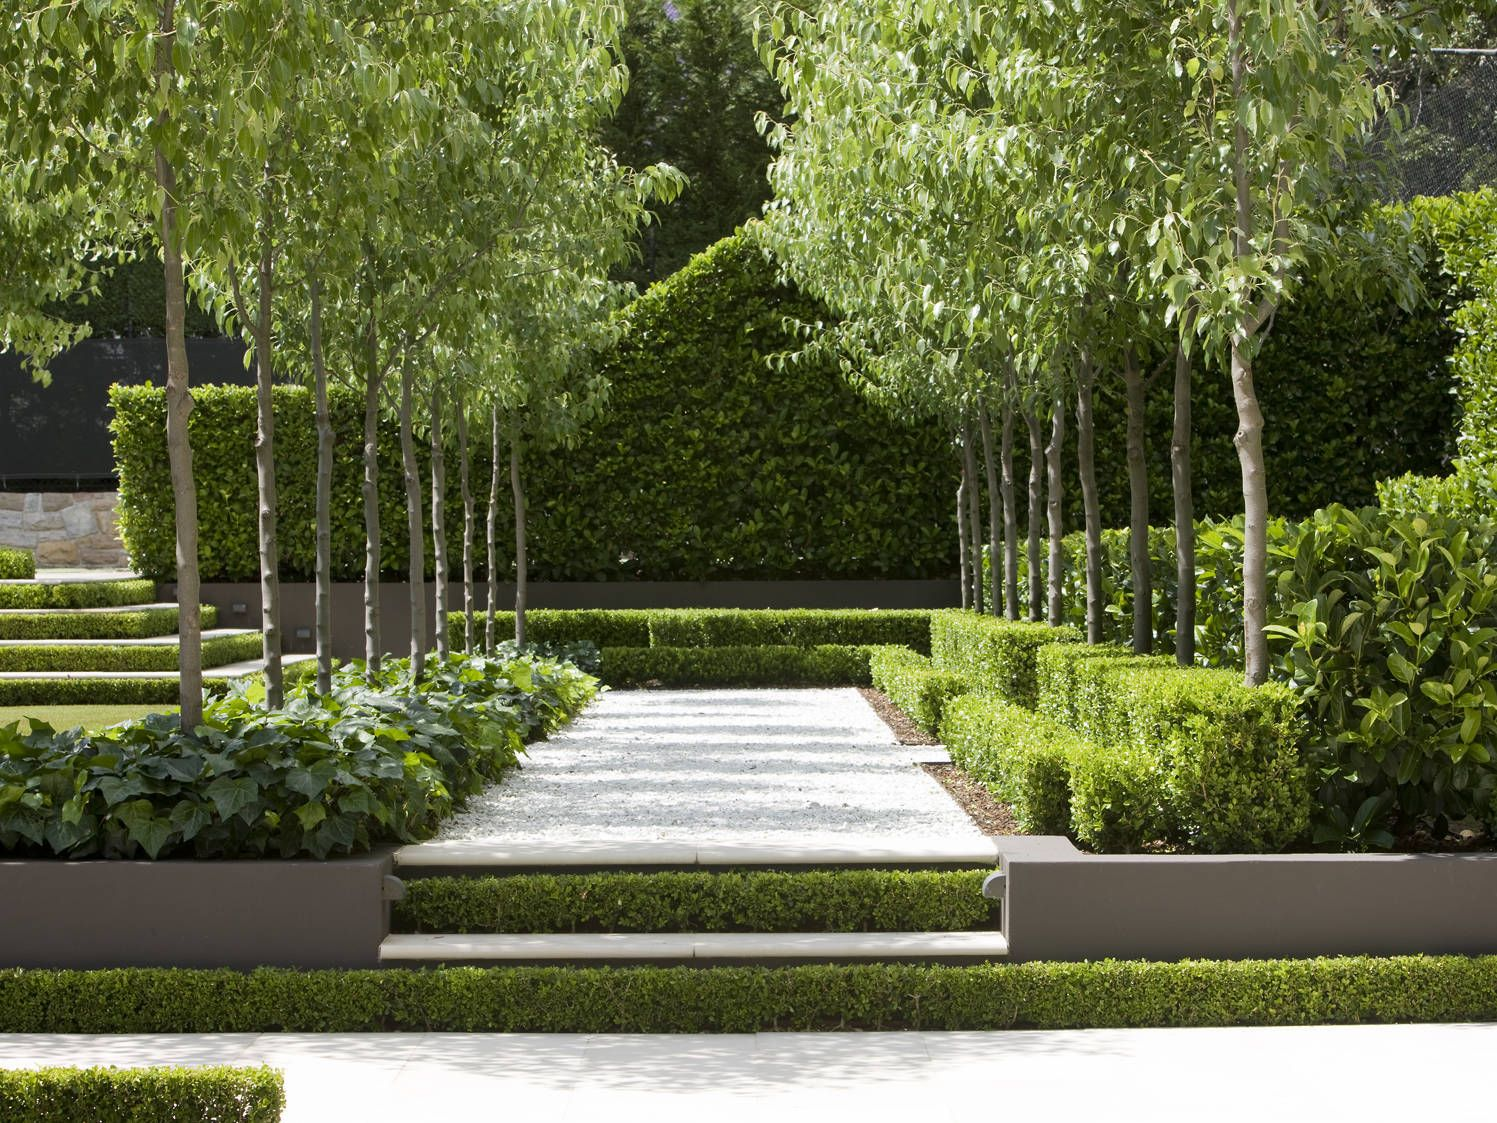 in this contemporary formal garden  shaded by pear trees  simplicity and restraint is used in